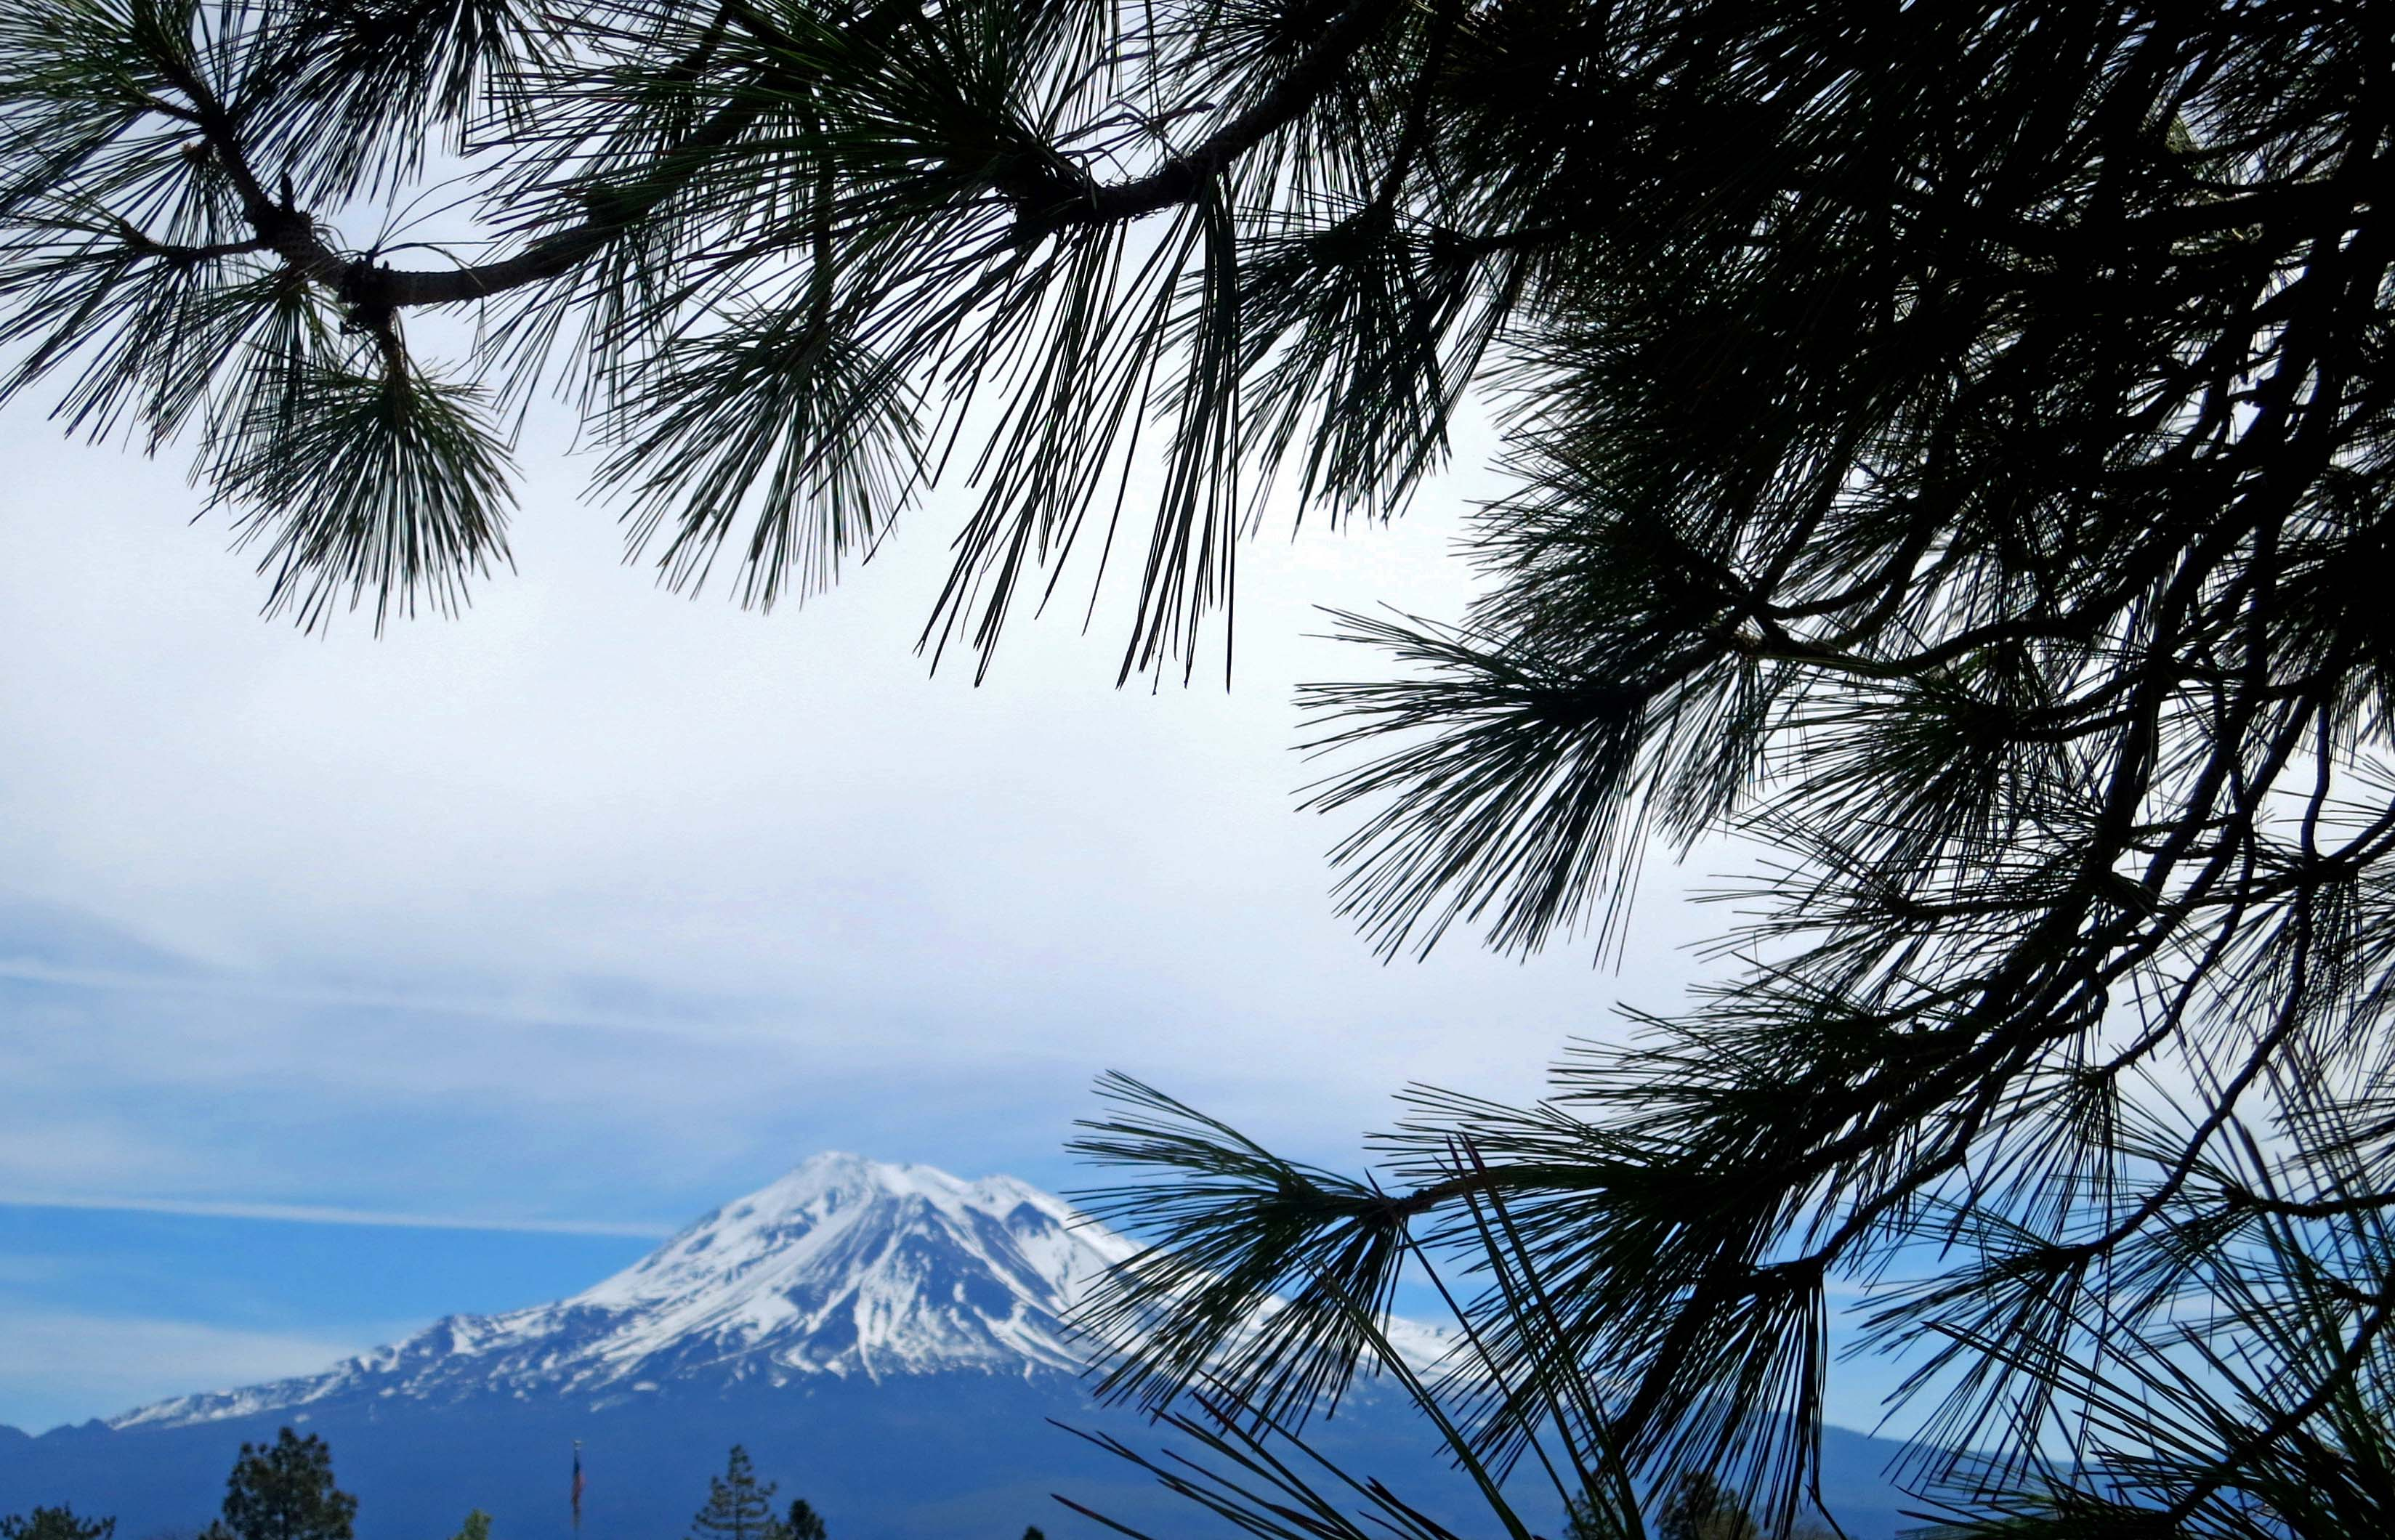 Mt. Shasta photo.